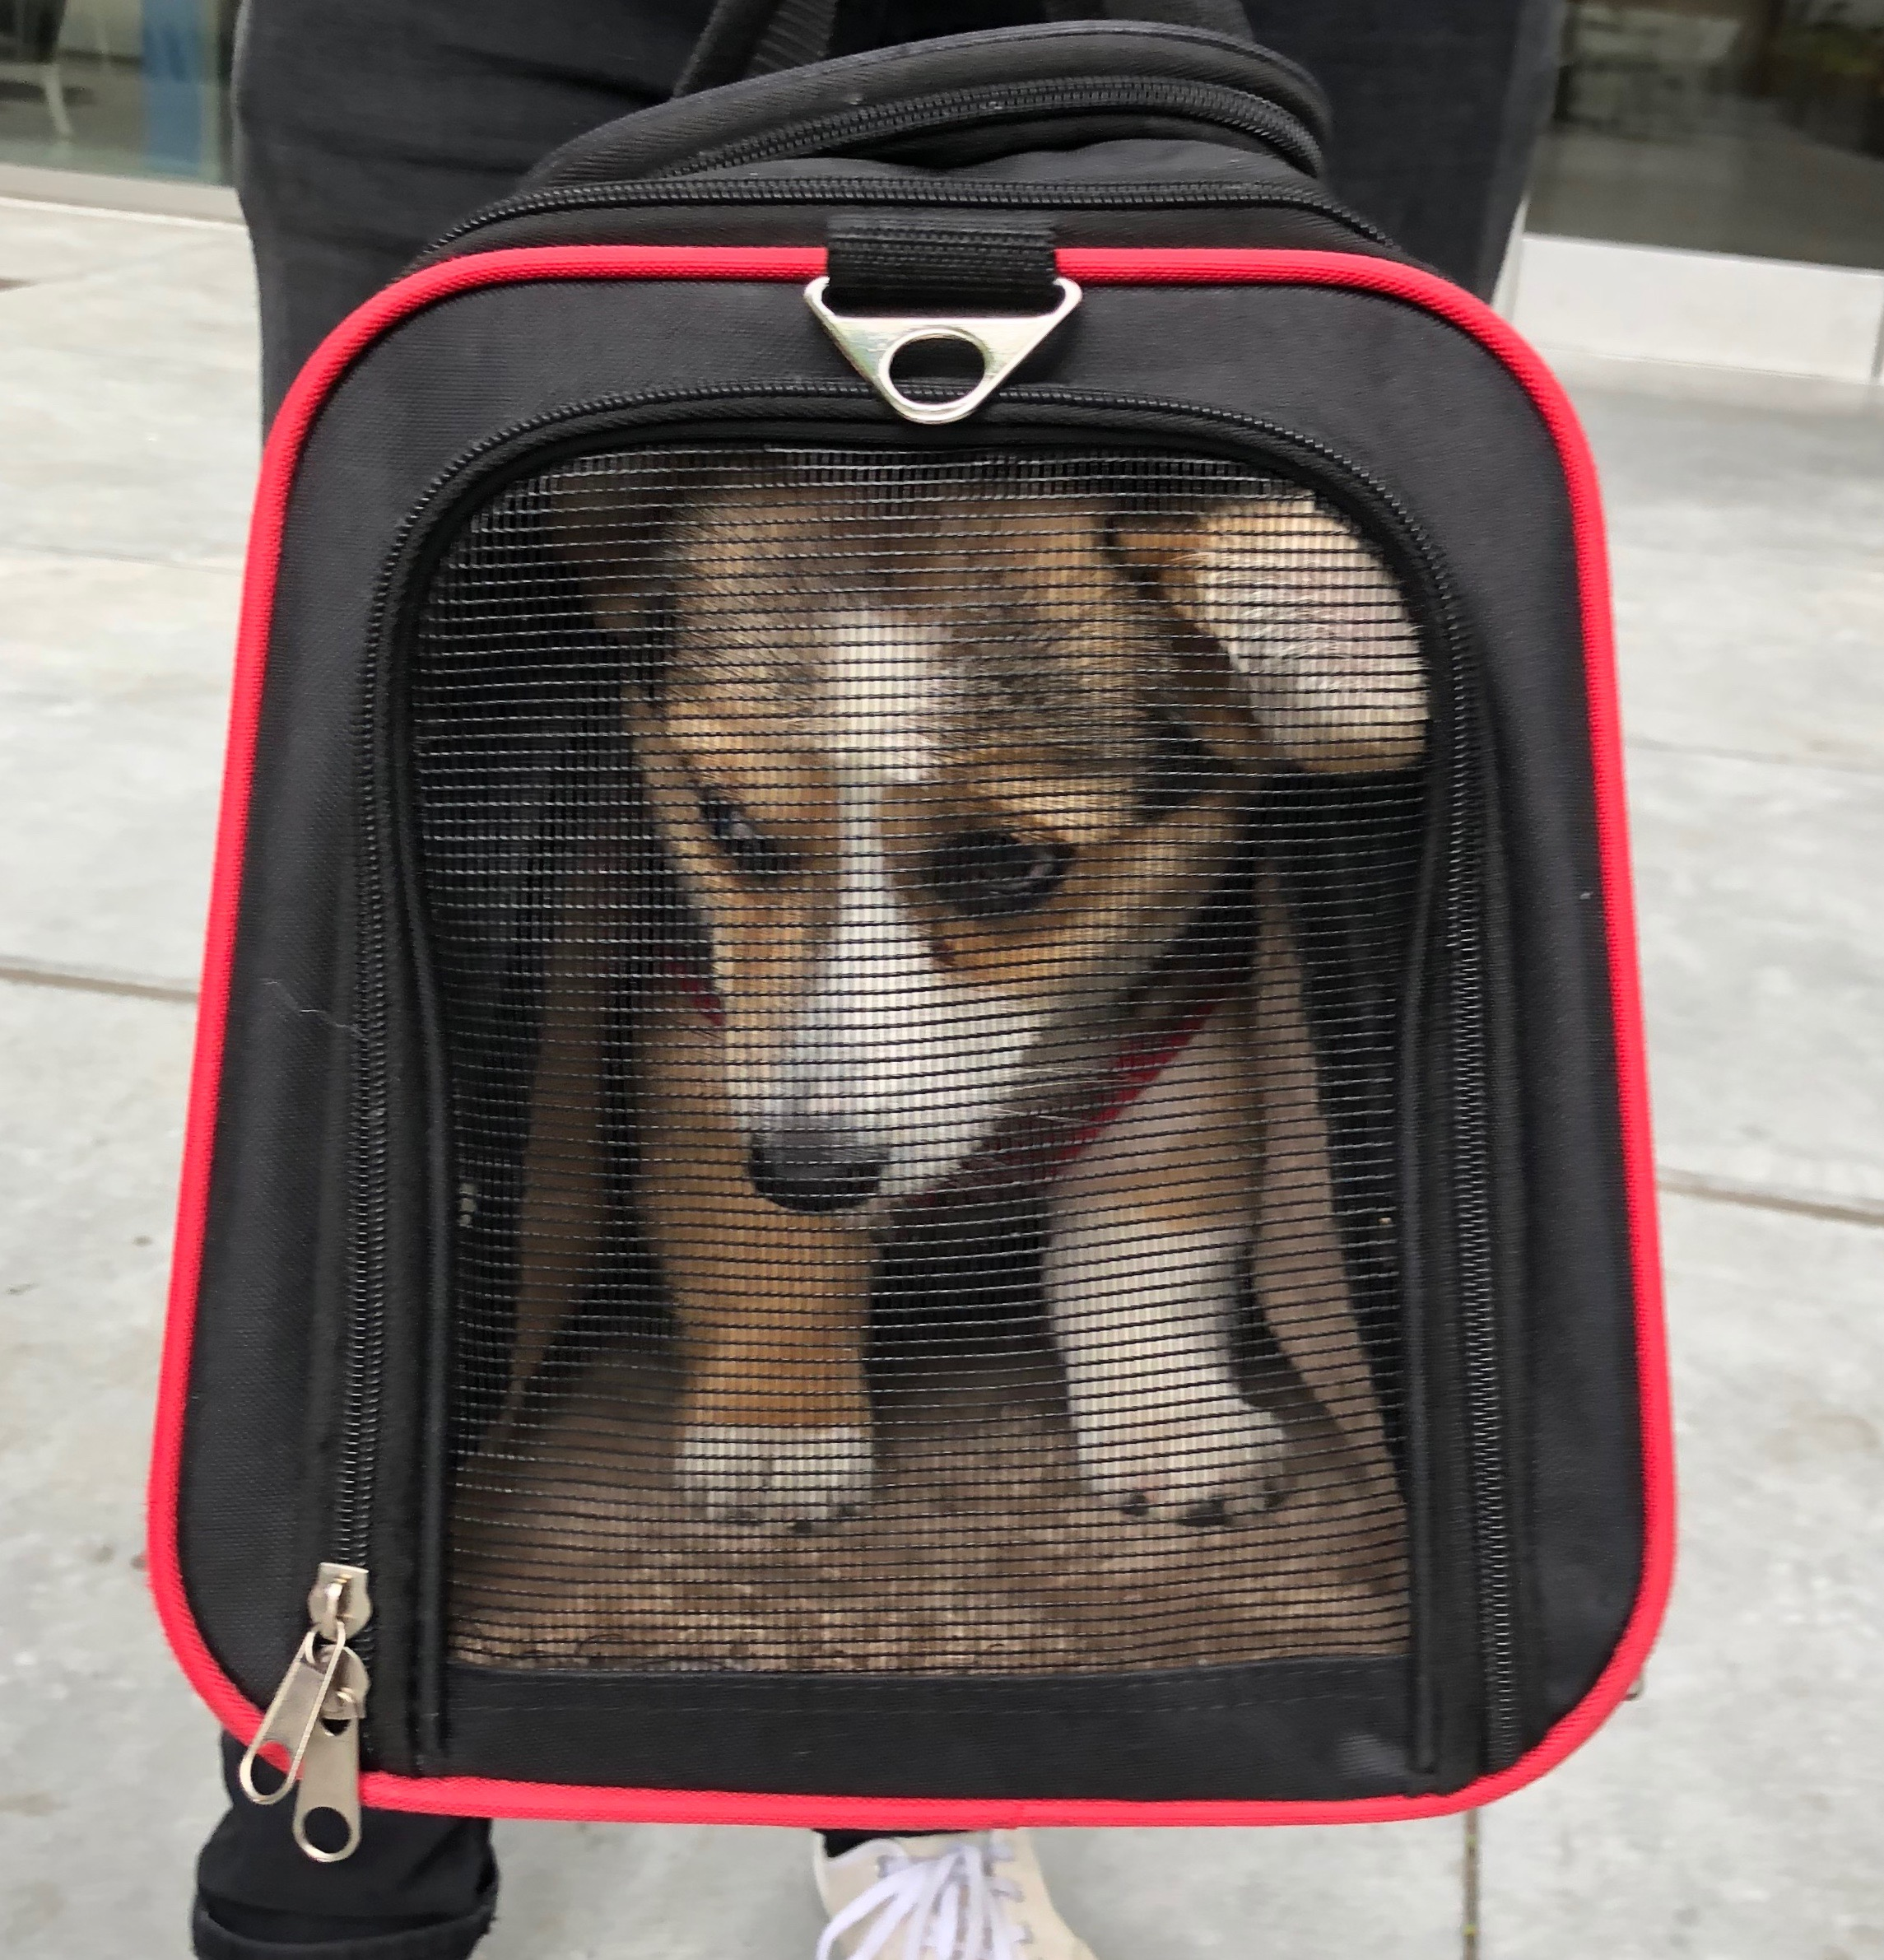 Pembroke Welsh Corgi In A Traveling Bag